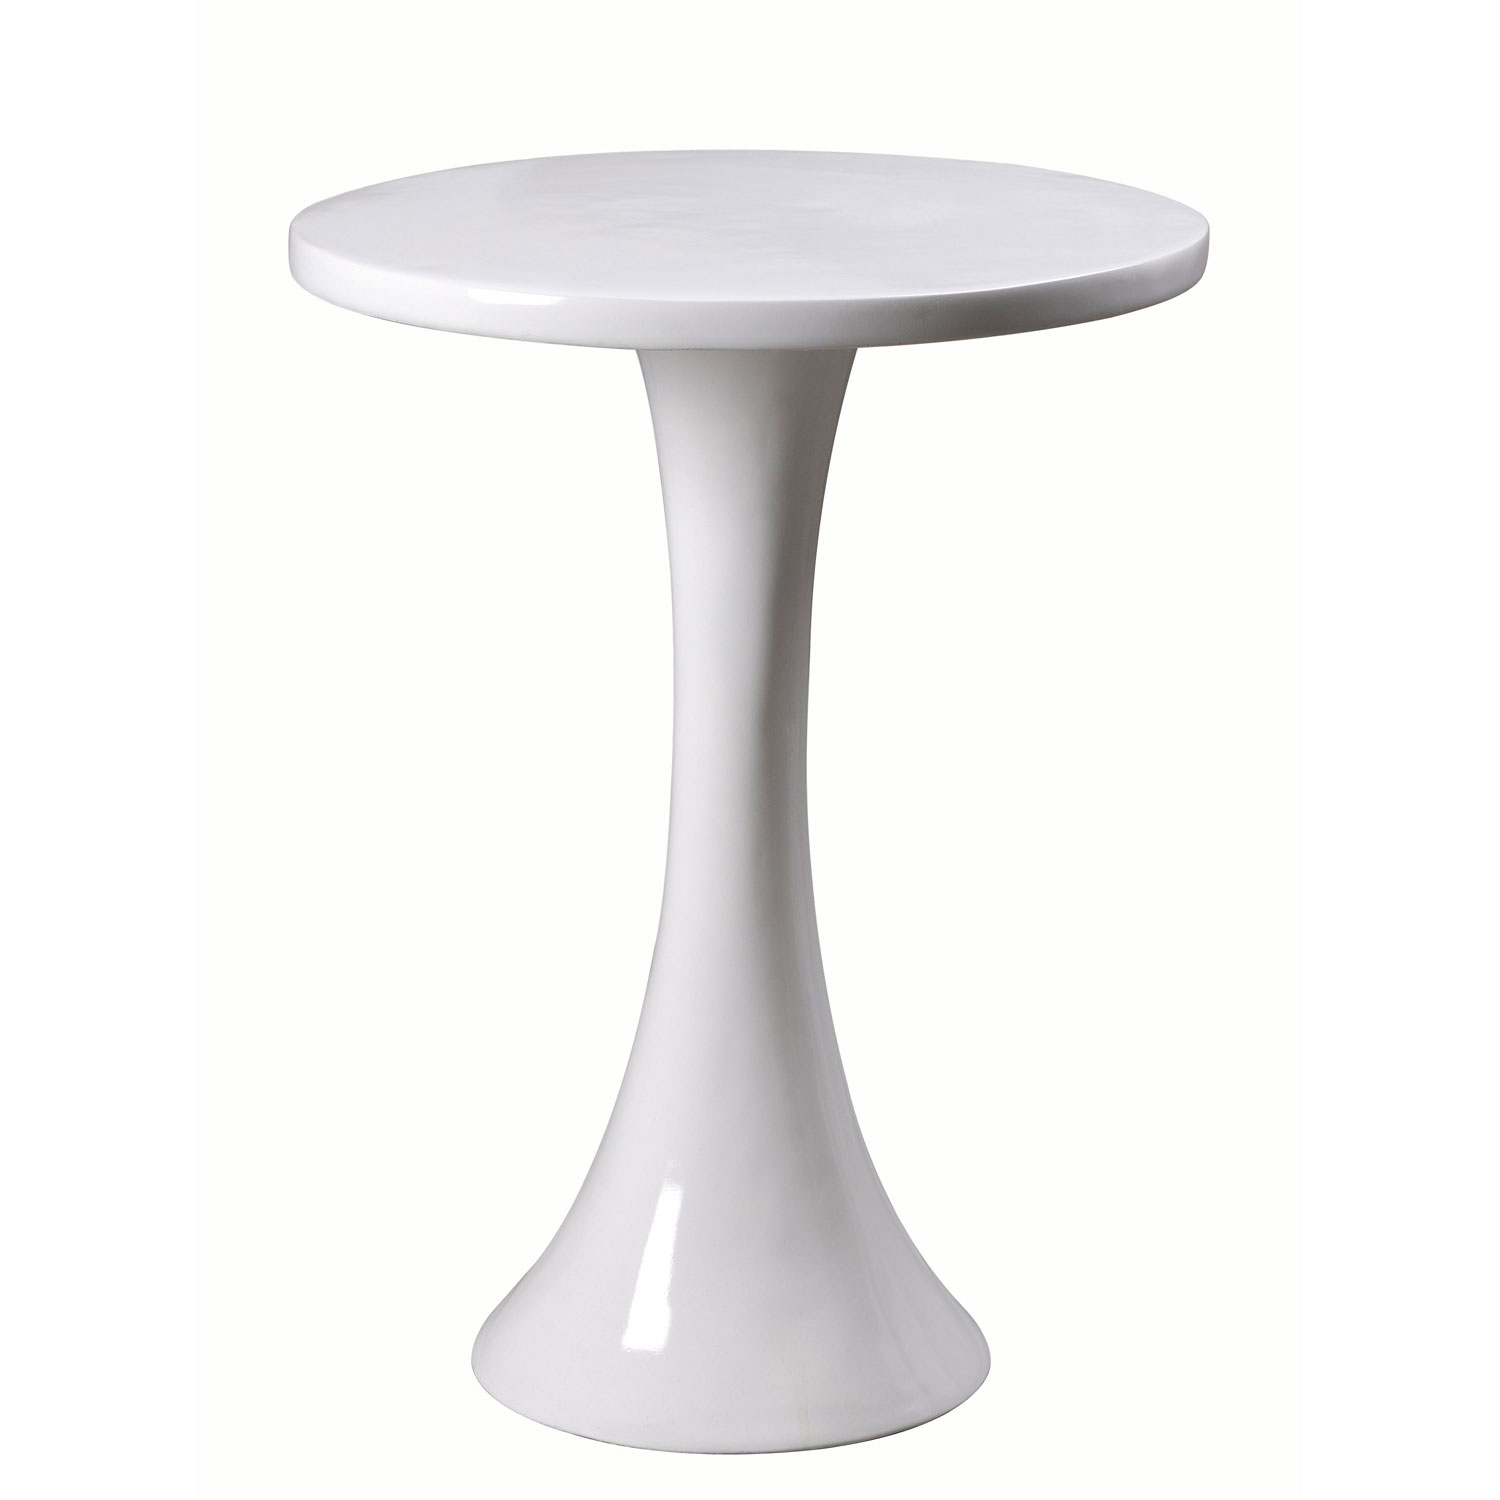 kenroy home snowbird gloss white accent table bellacor round marble top bistro red cover resin patio end beach themed room decor solid tables gray dinner set living spaces